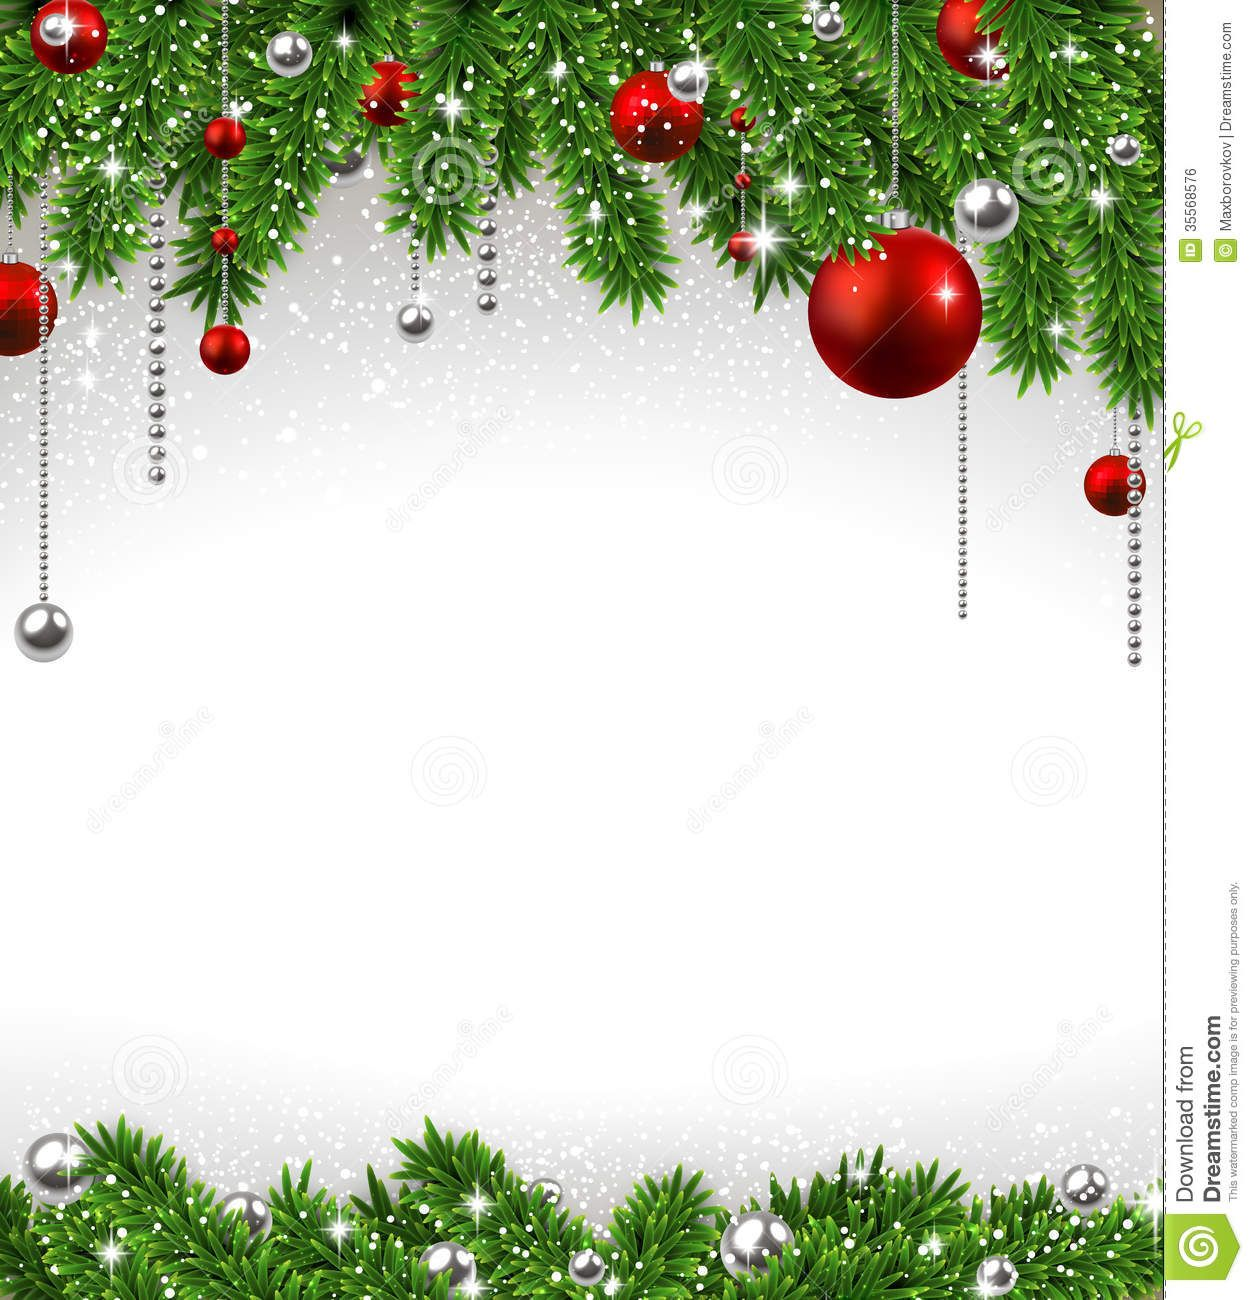 christmas background with fir branches and balls. royalty free